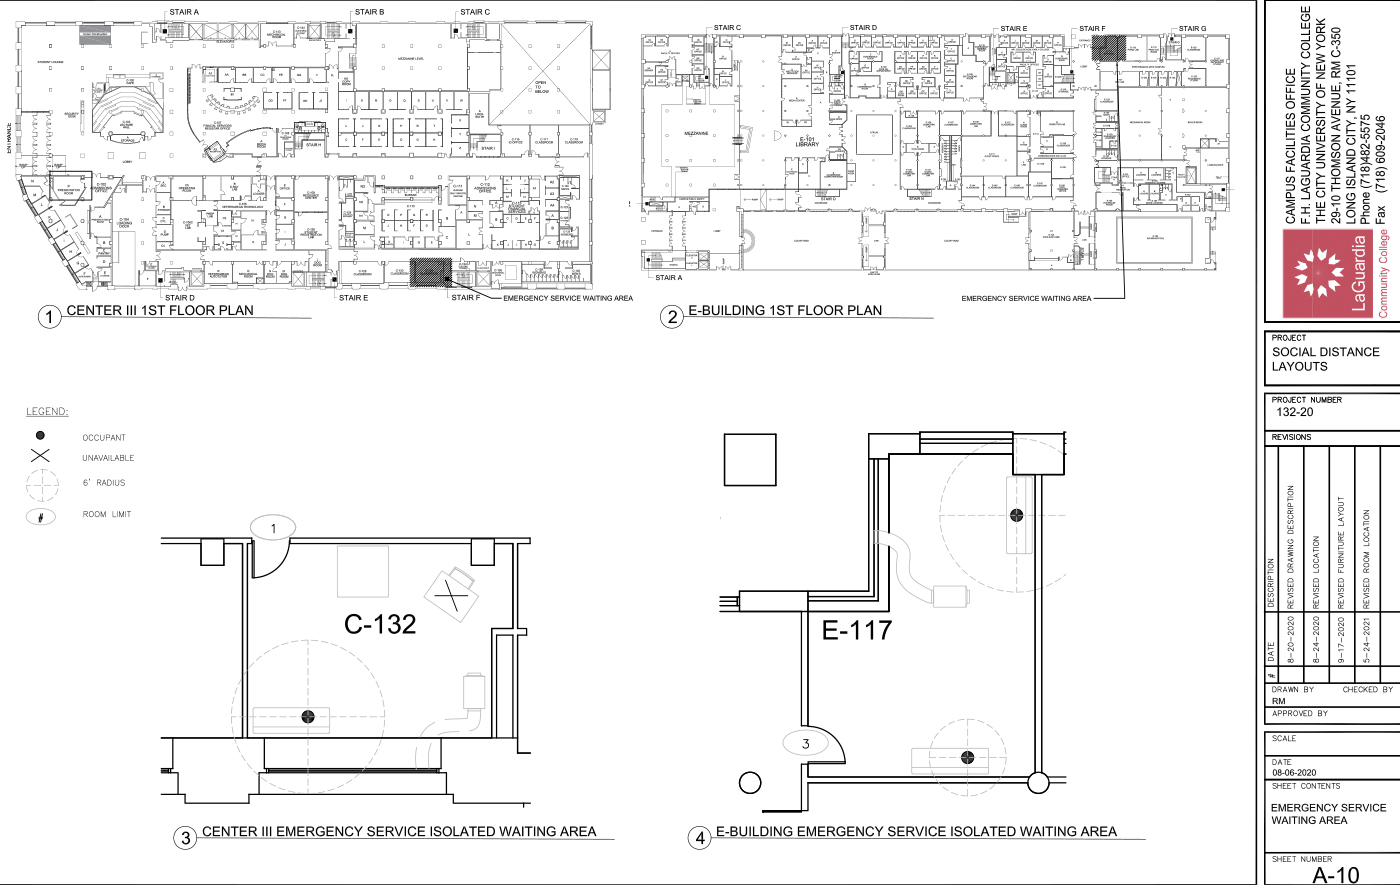 LaGuardia's campus facilities_centerIII 1st floor_Shenker hall 1st floor plan